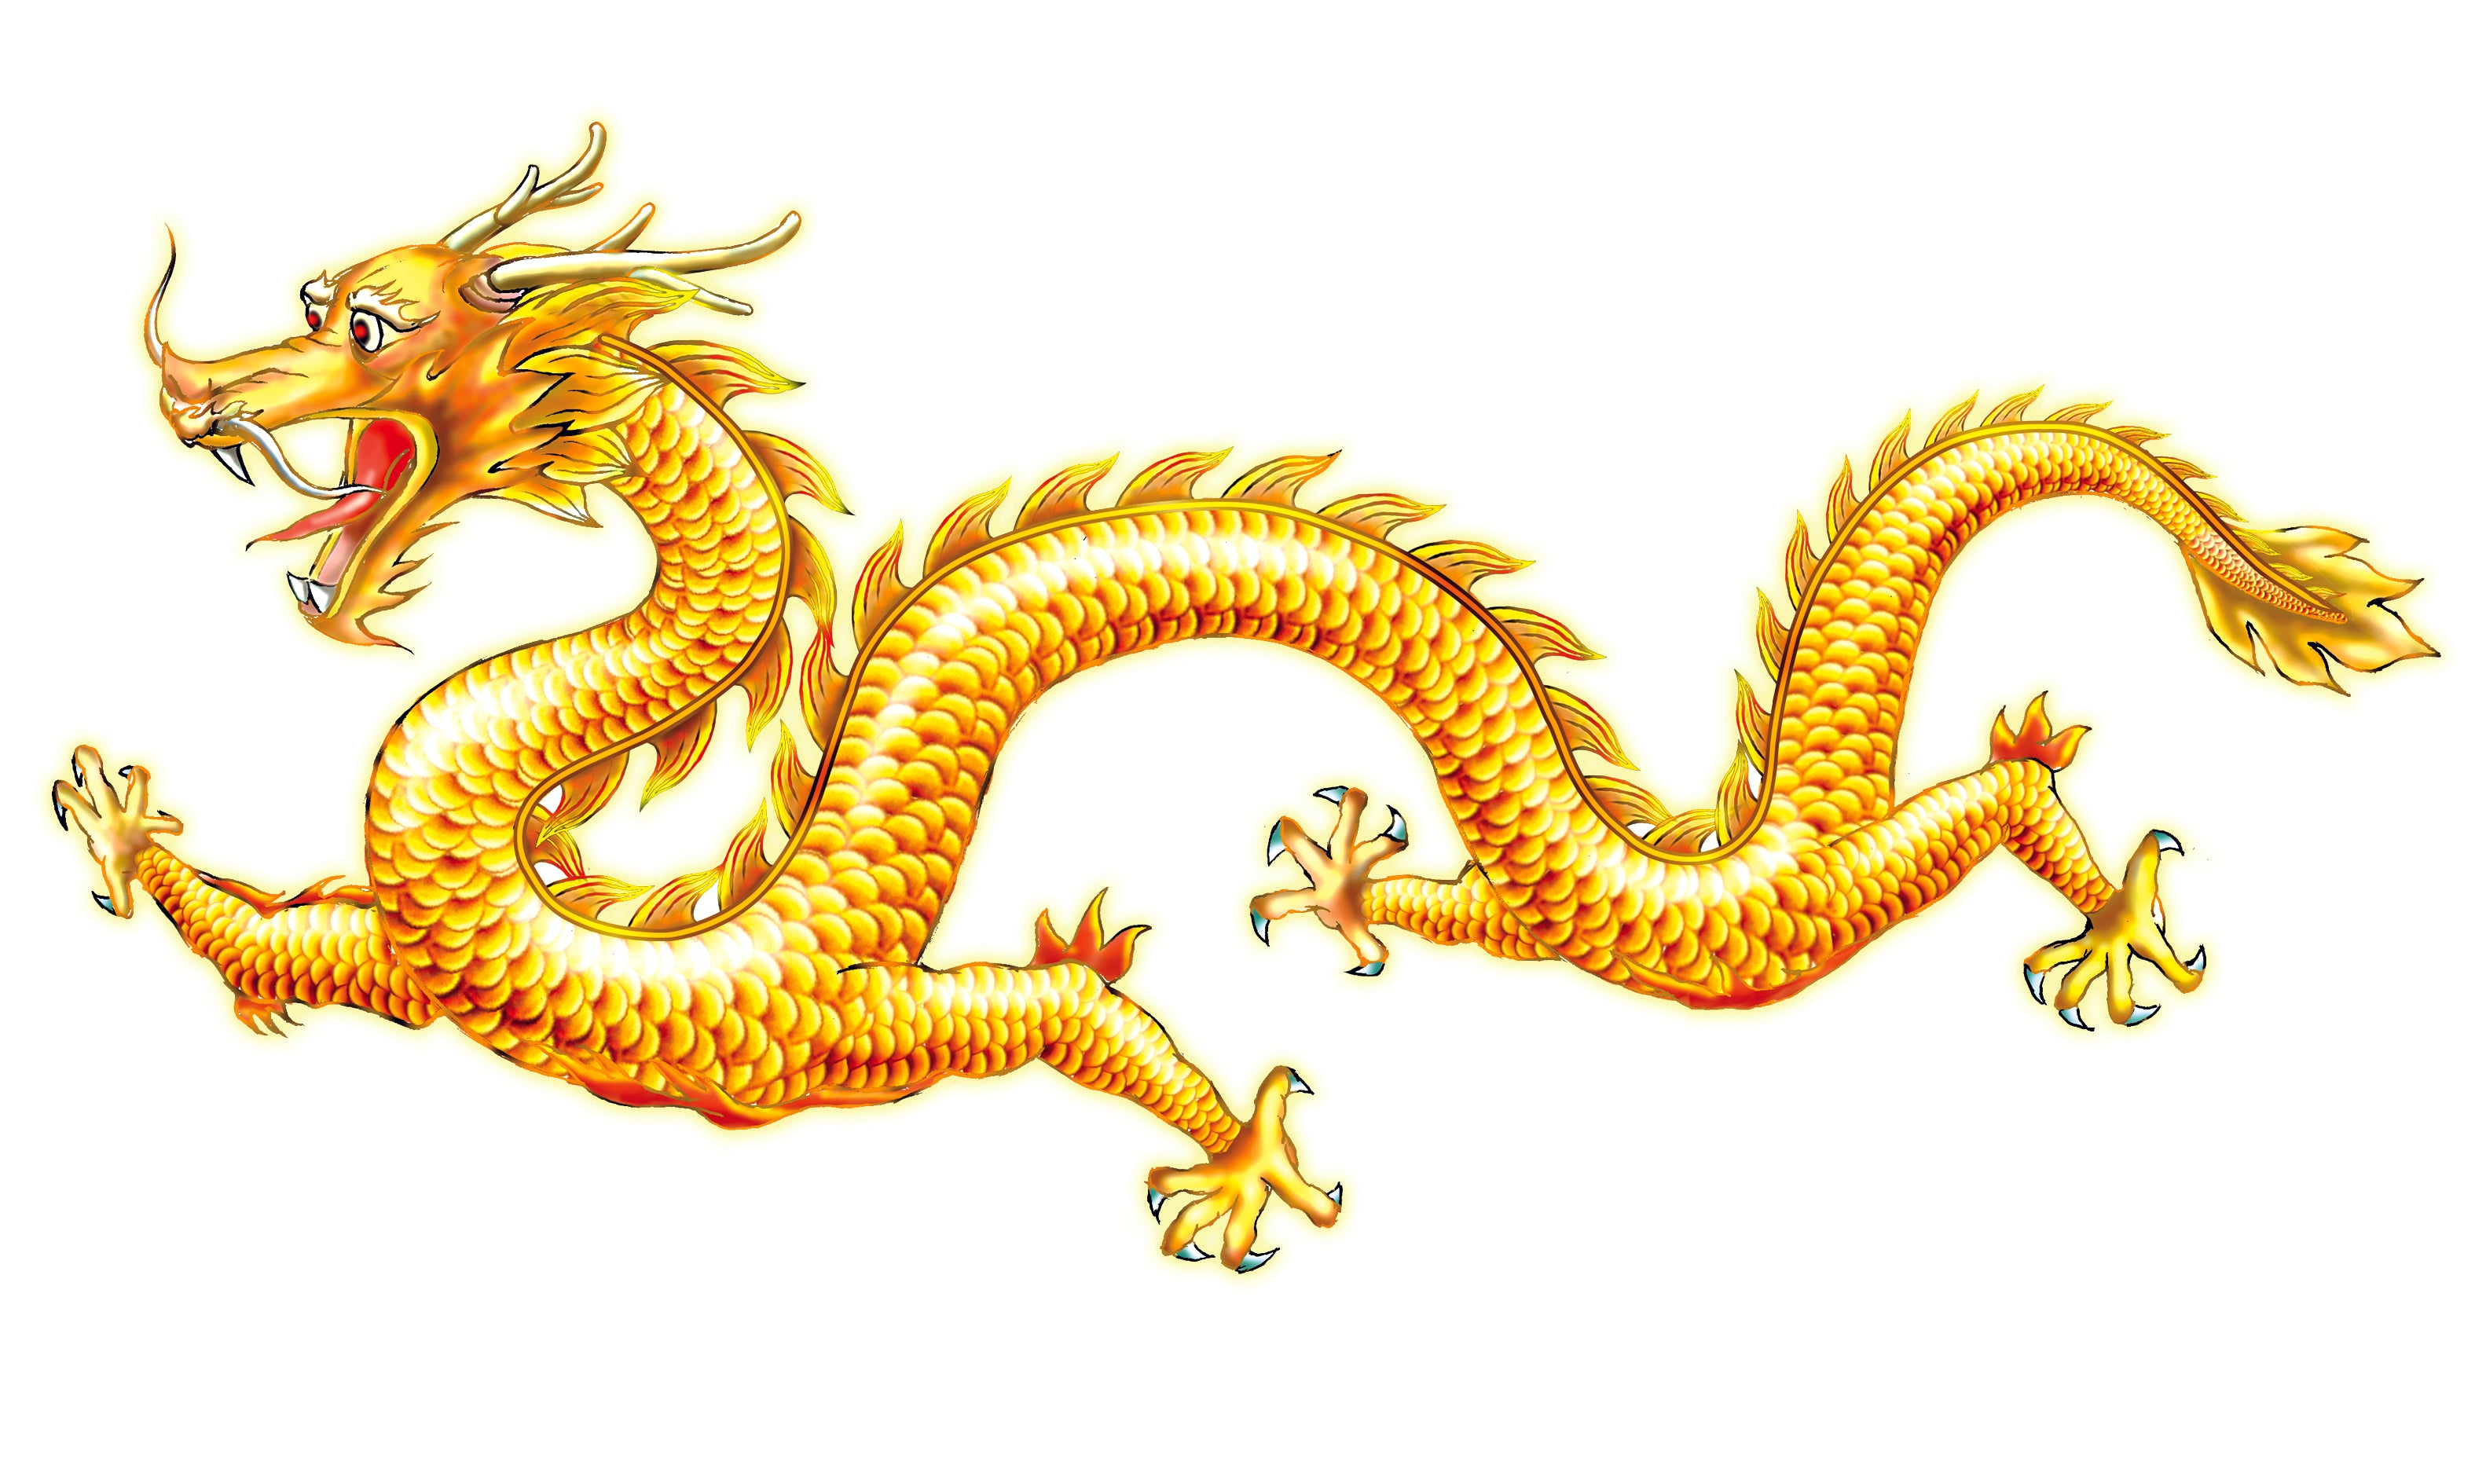 Dragon Decal for Black Gas tank;